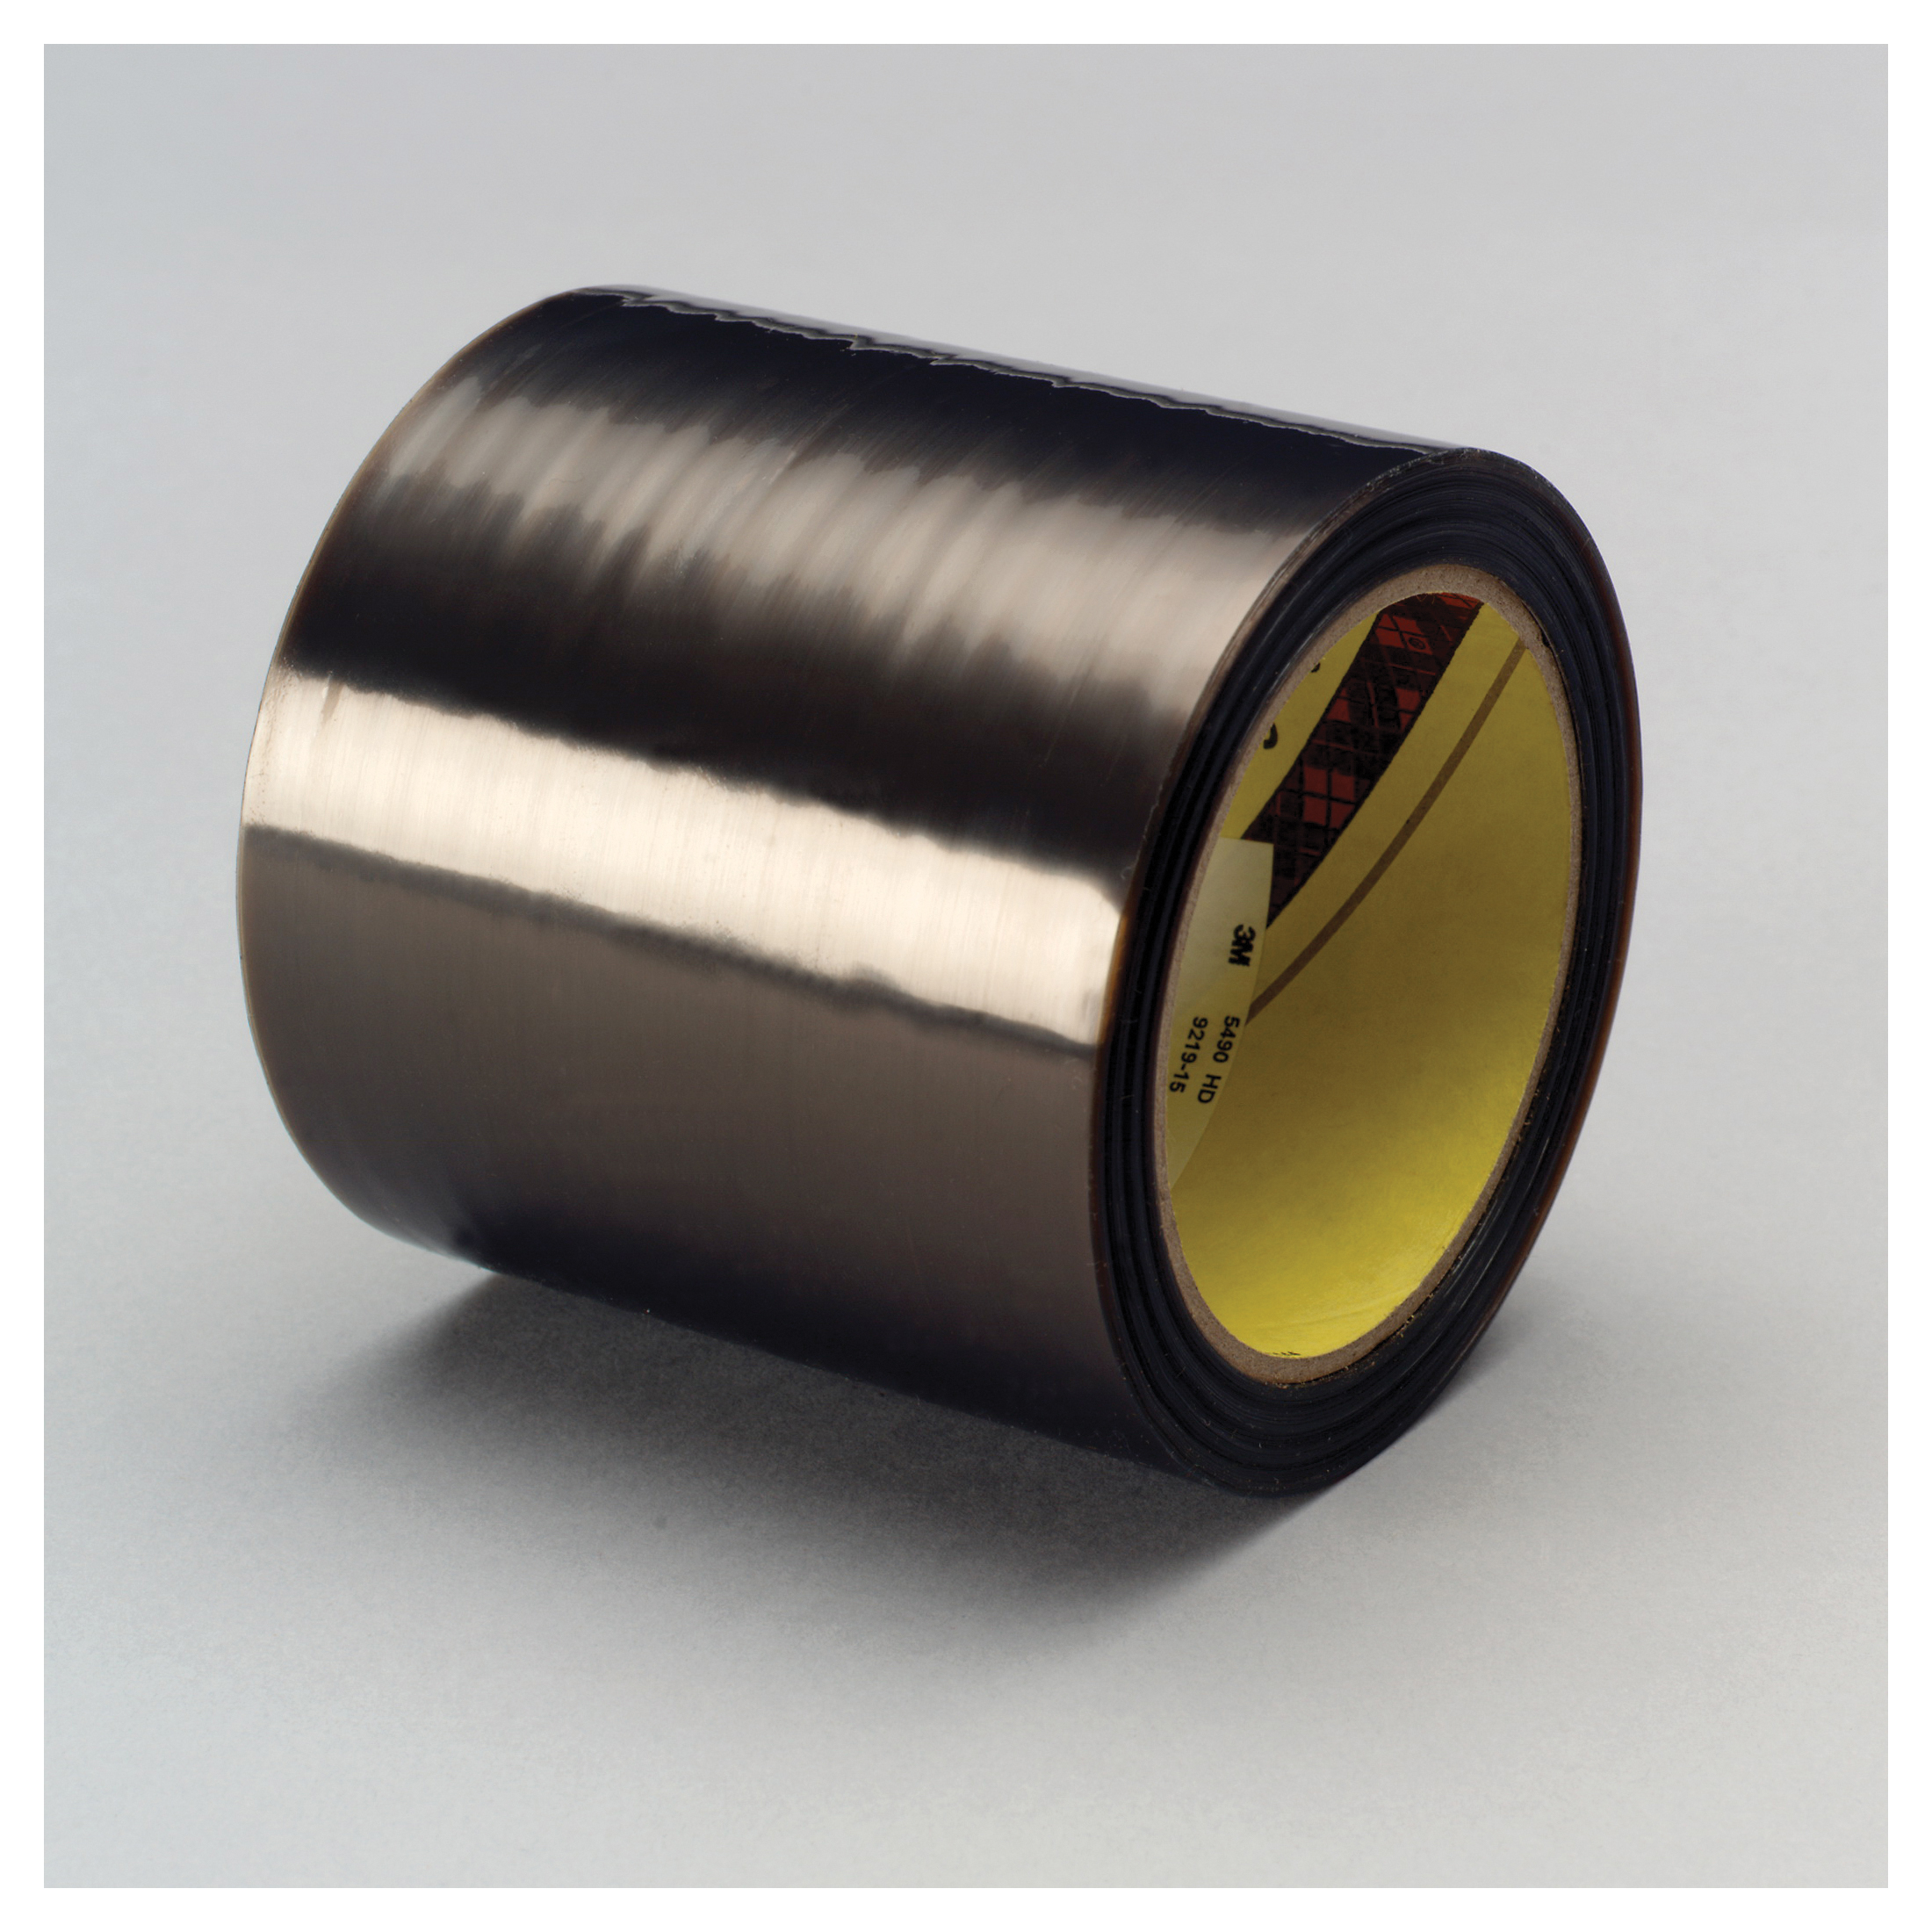 3M™ 021200-03432 Film Tape, 36 yd L x 4 in W, 3.7 mil THK, Silicon Adhesive, Extruded PTFE Backing, Gray